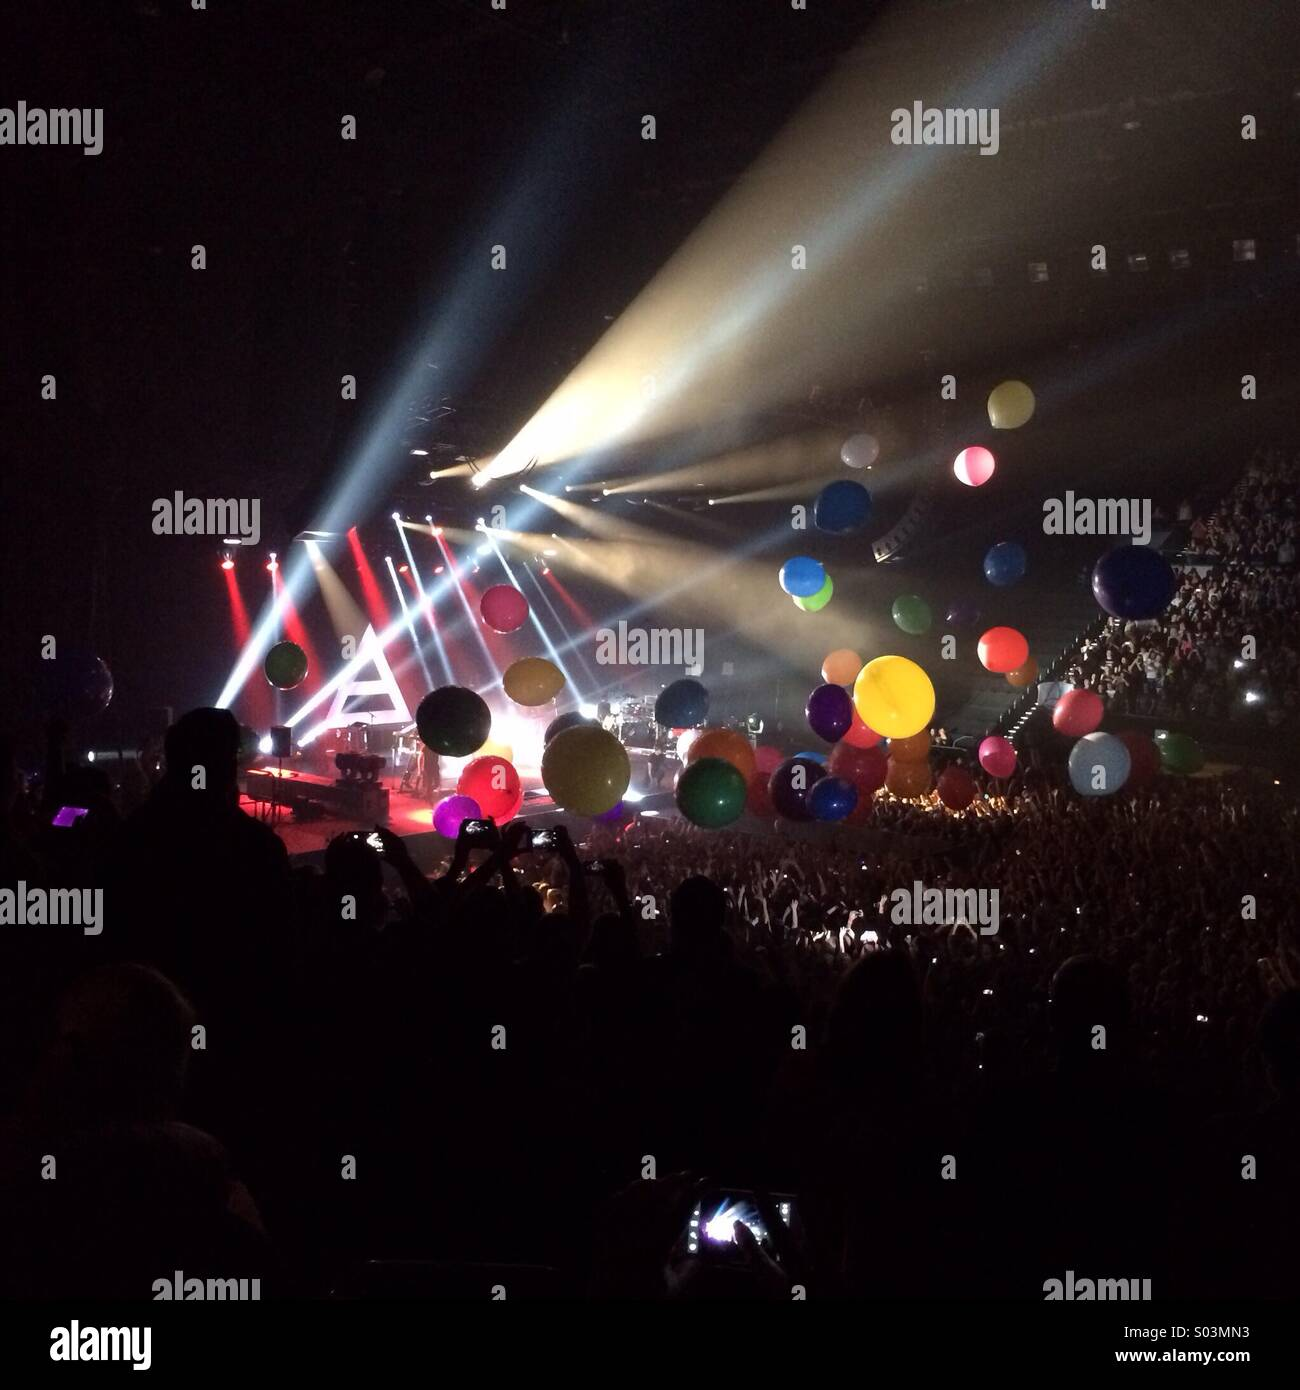 30 Seconds To Mars in concert at the Sydney Entertainment Centre Saturday 29th March 2014 - Stock Image